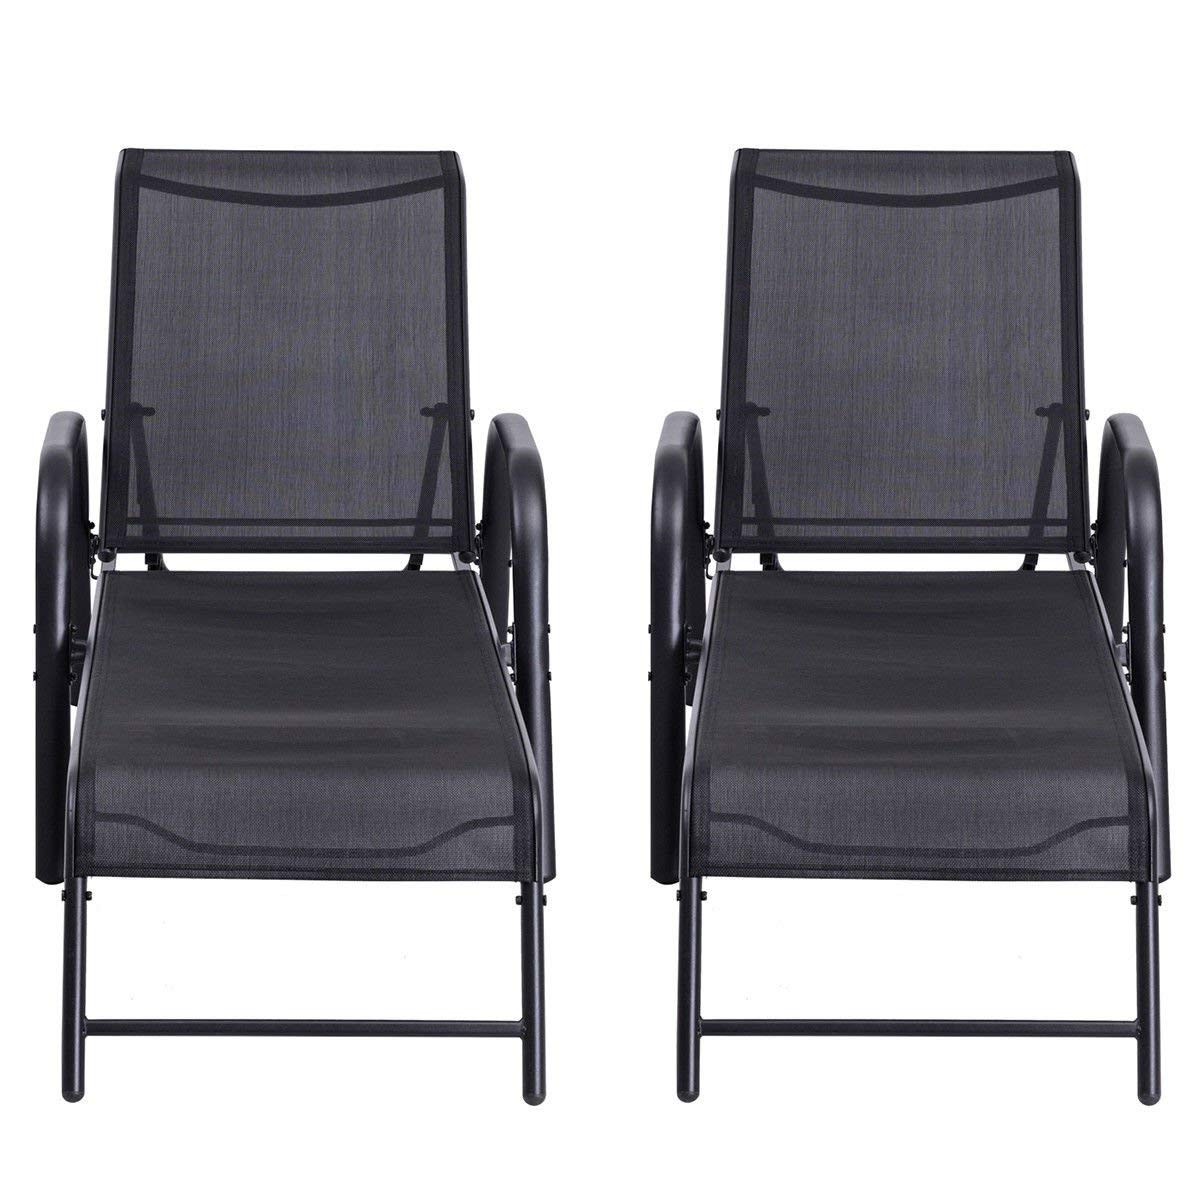 Most Recent Cheap Chaise Lounge Sling, Find Chaise Lounge Sling Deals On Regarding Adjustable Sling Fabric Patio Chaise Lounges (View 20 of 25)